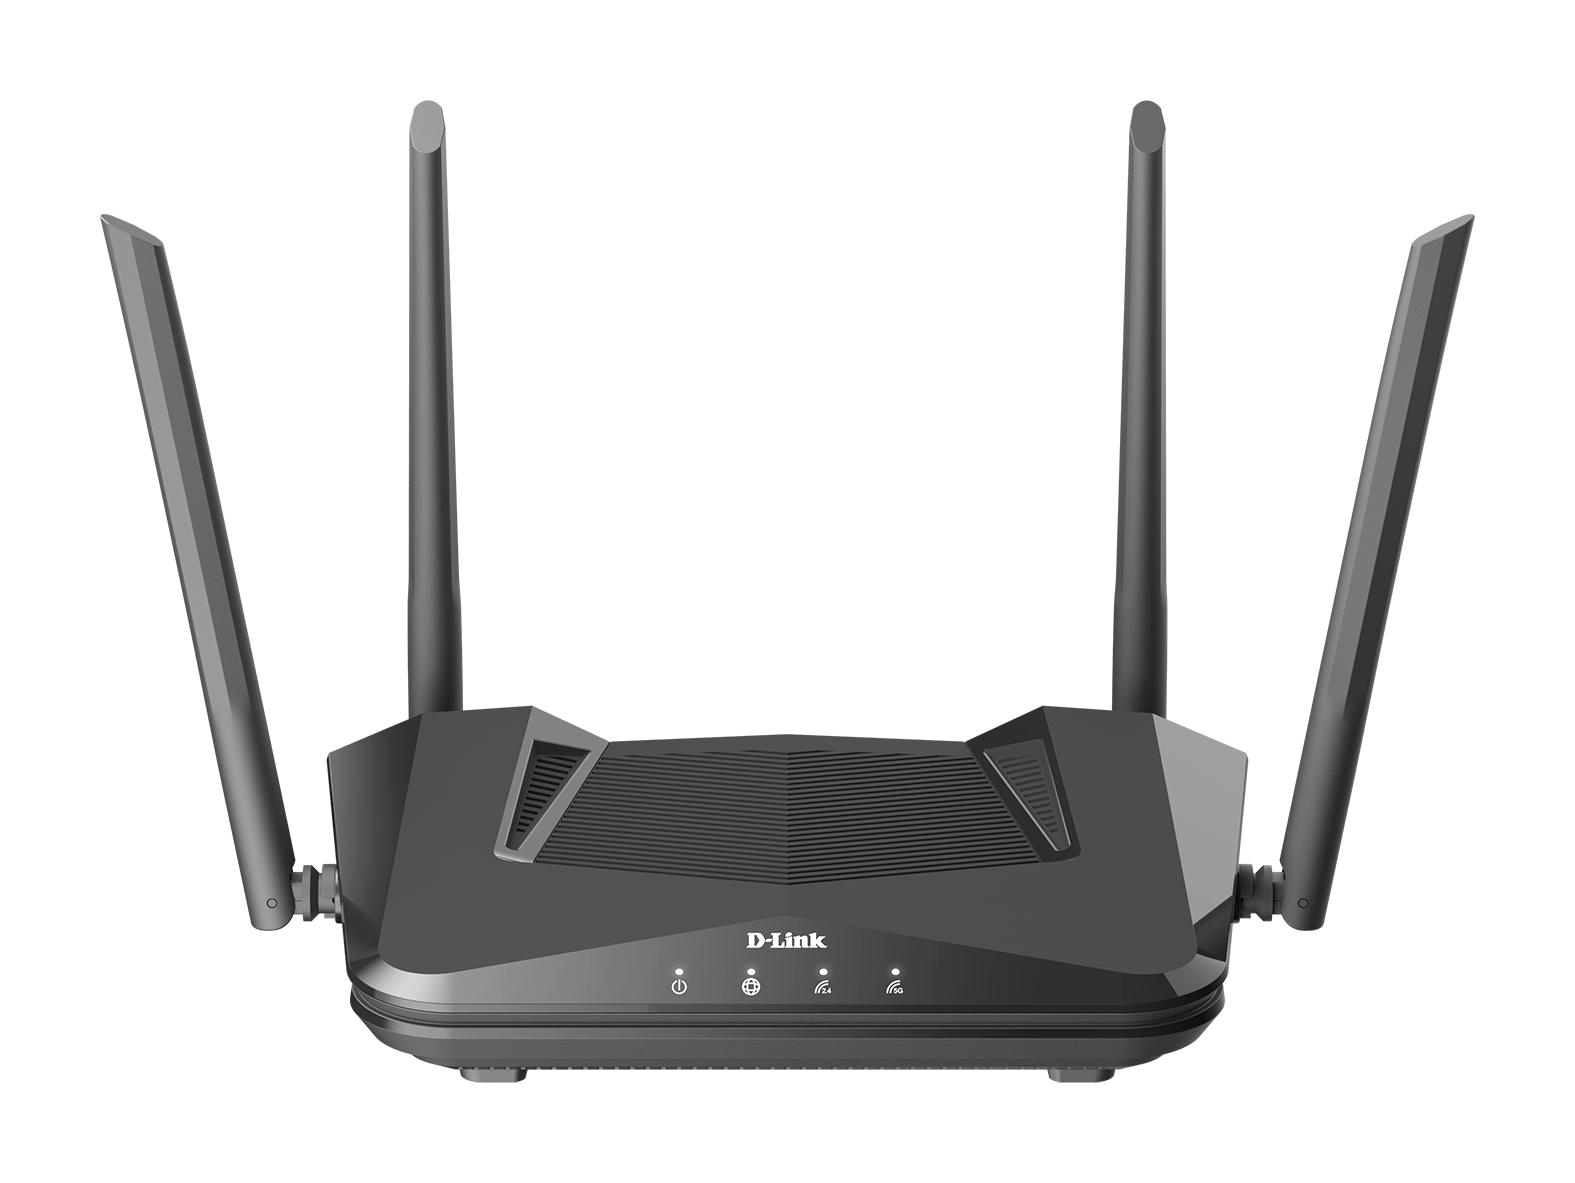 DIR-X1560 Smart Wi-Fi 6 Router